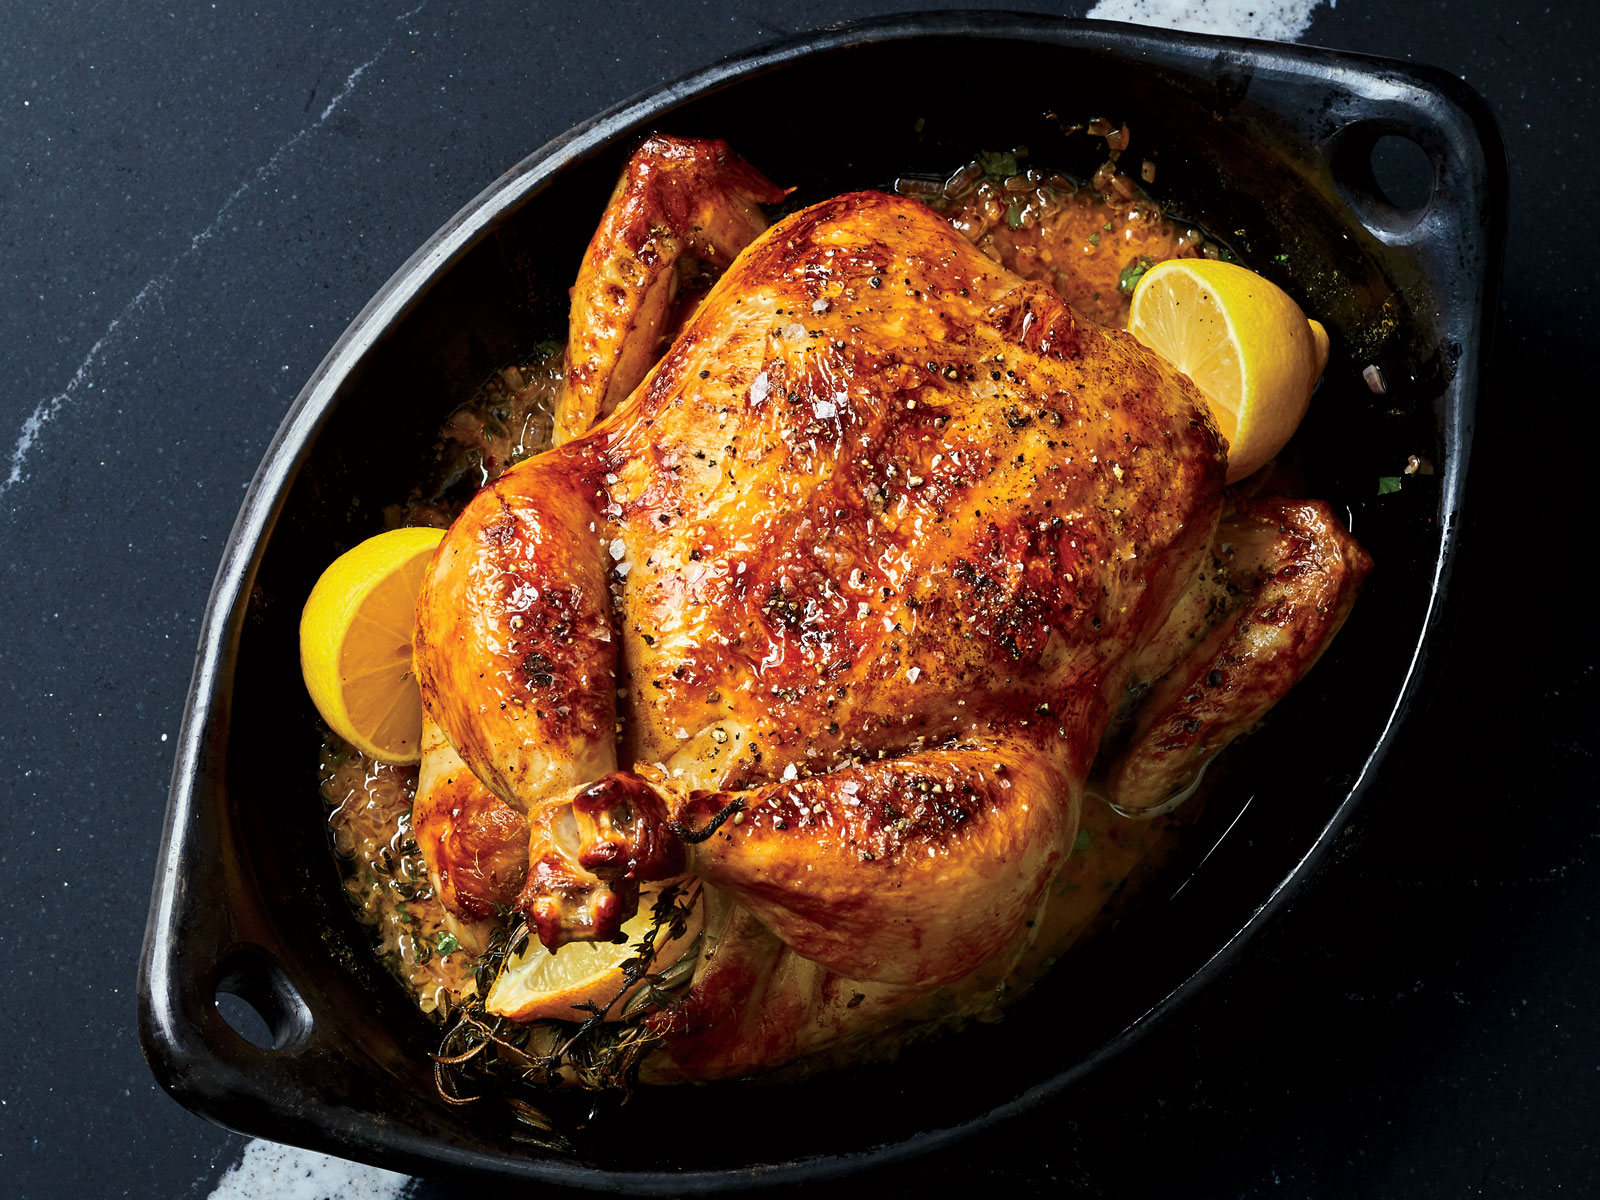 Juicy Lemon-and-Herb Roast Chicken